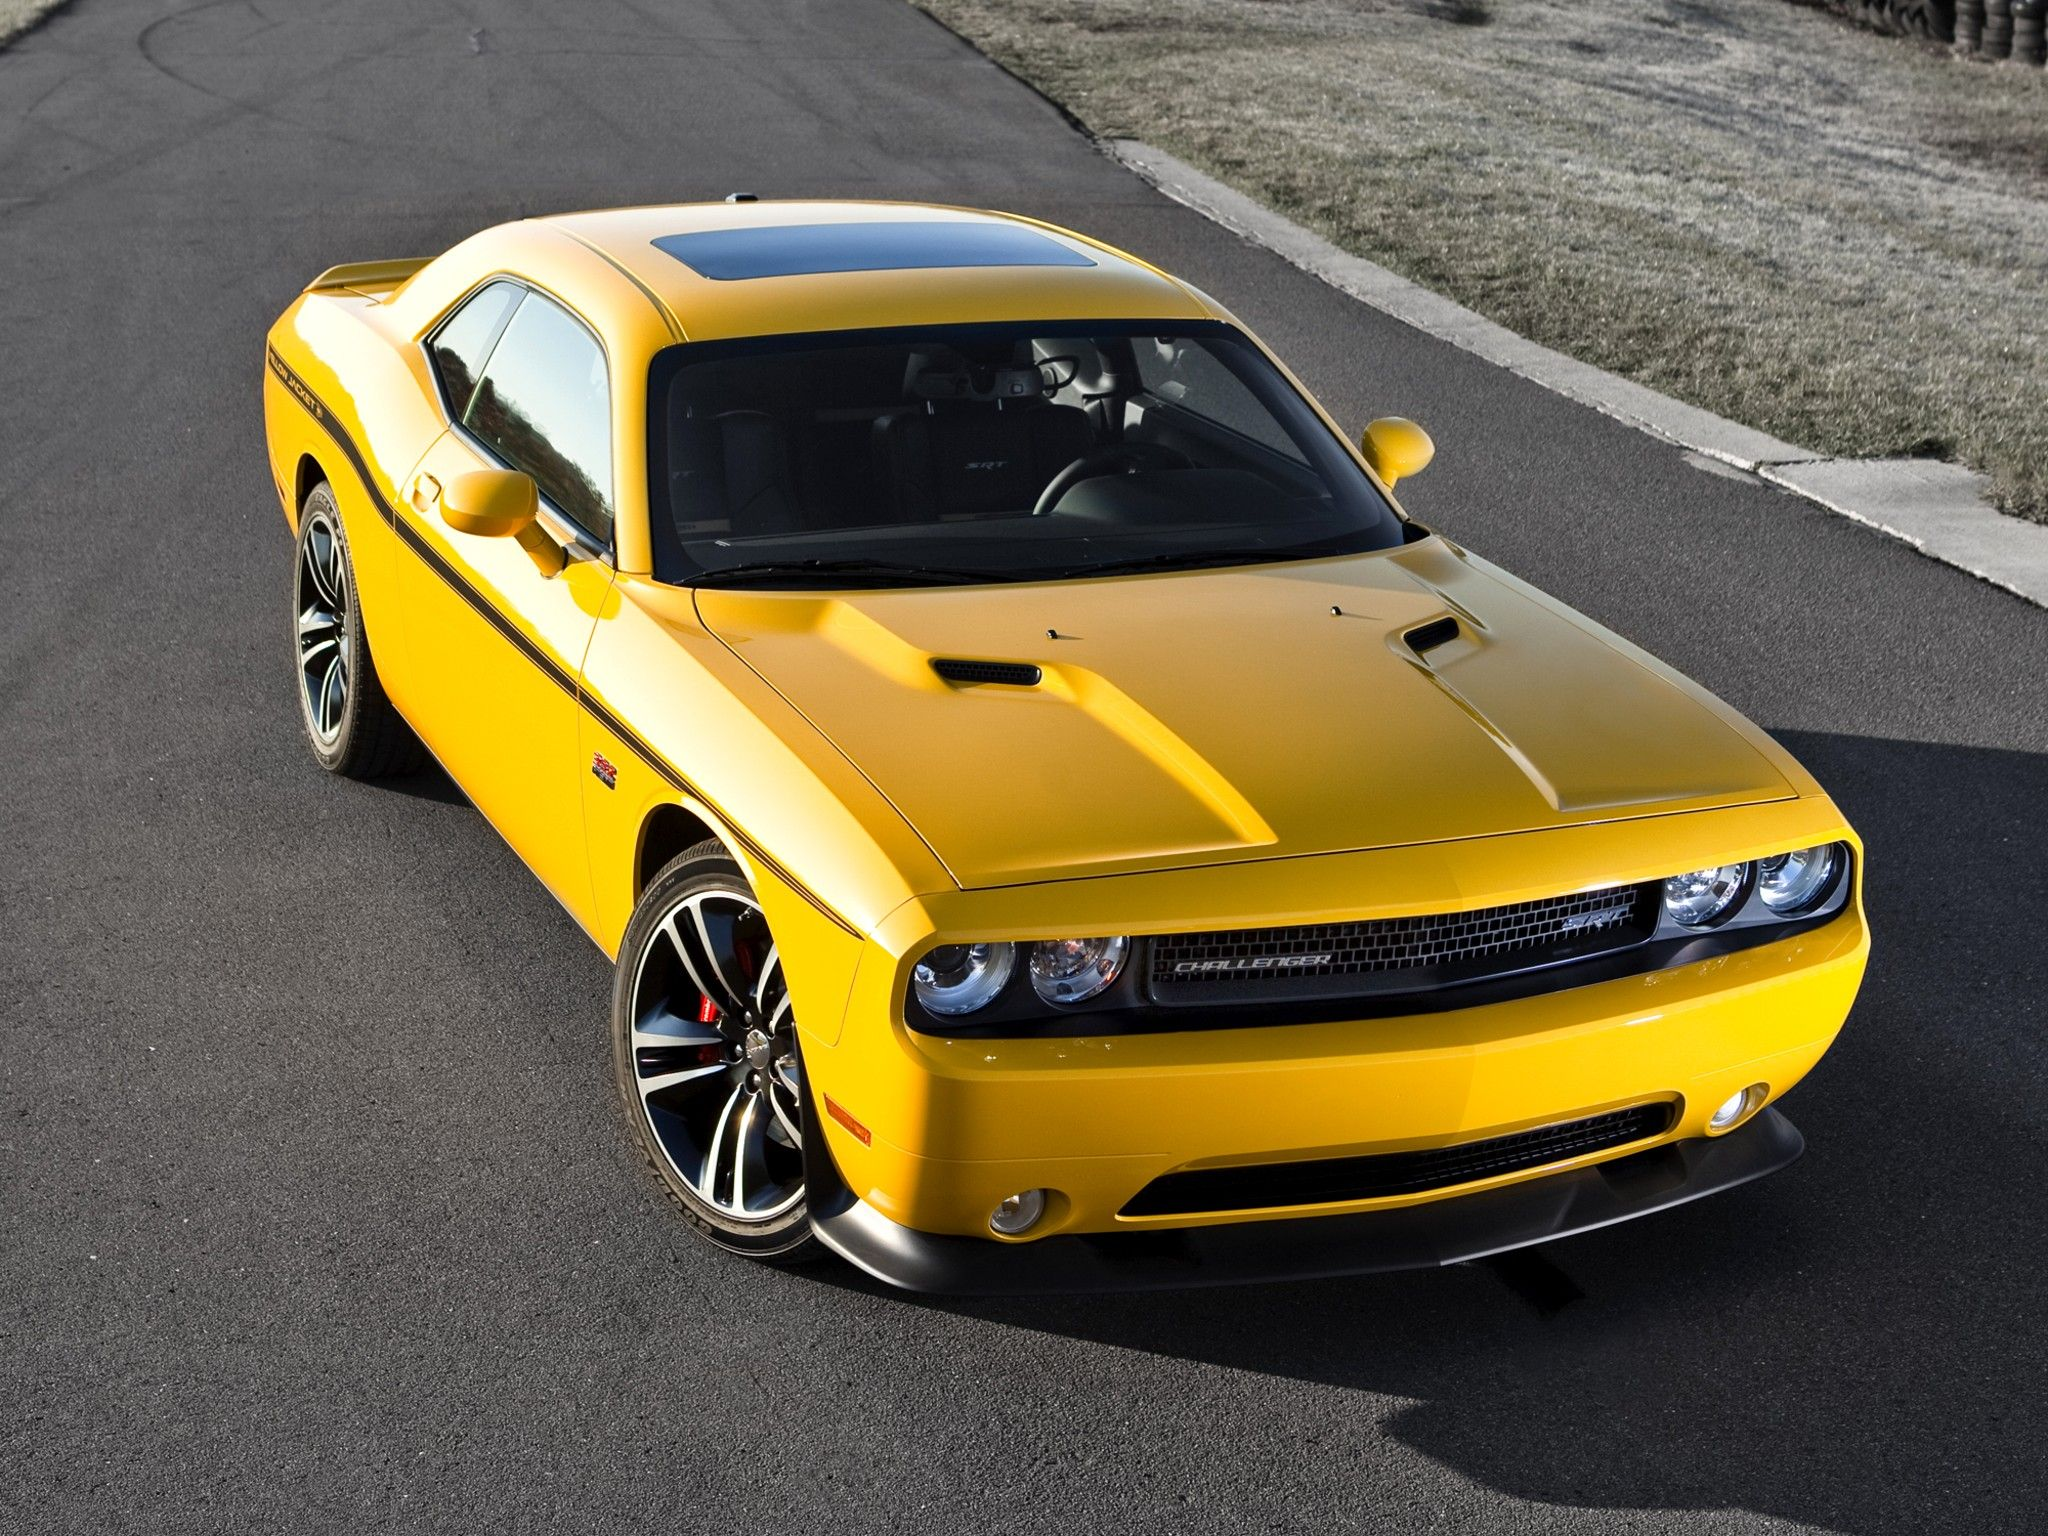 2012 Dodge Challenger Srt8 392 Yellow Jacket Challenger Srt8